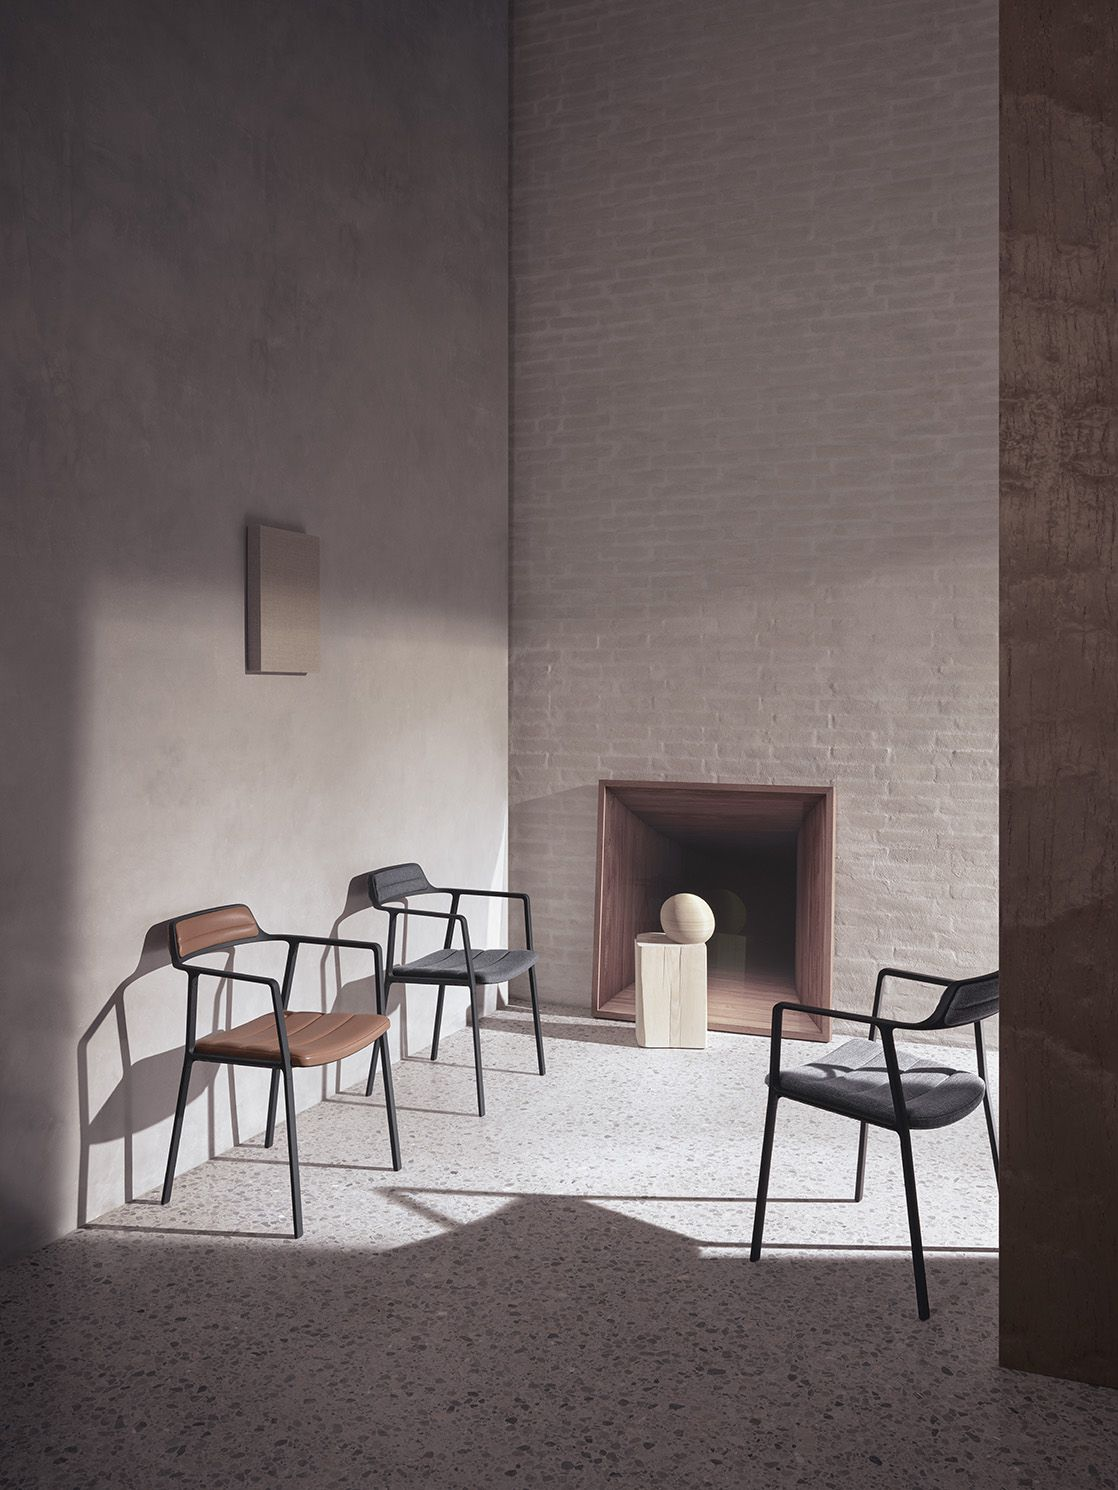 Chairs sitting against wall